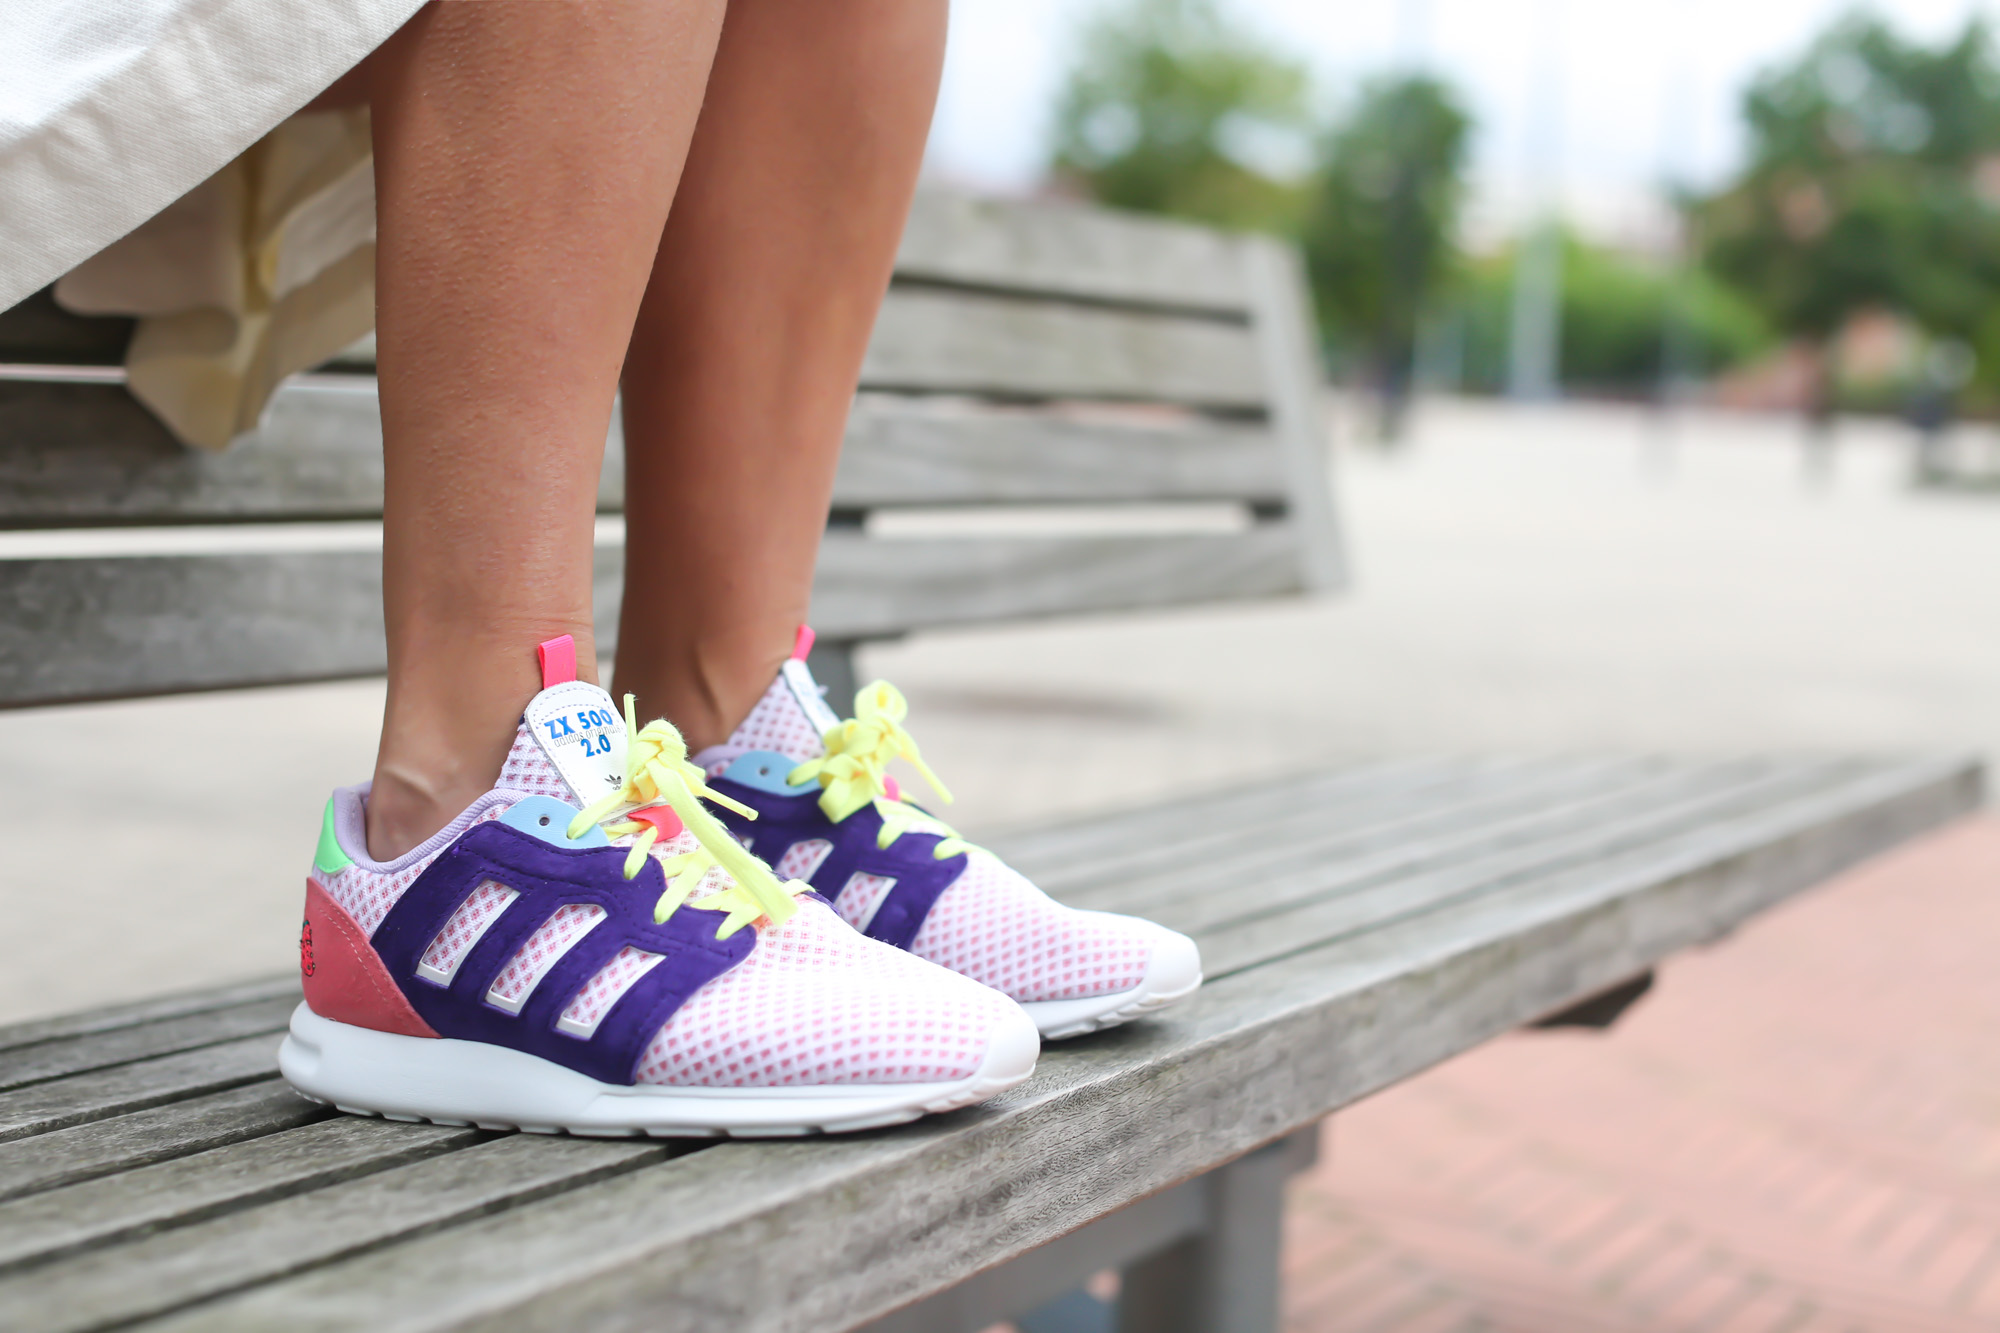 Clochet-streetstyle-strawberry-daiquiri-adidas-ZX-500-2.0-W-Cocktail-Sneaker-Boutique-Pack-leztin-street-2